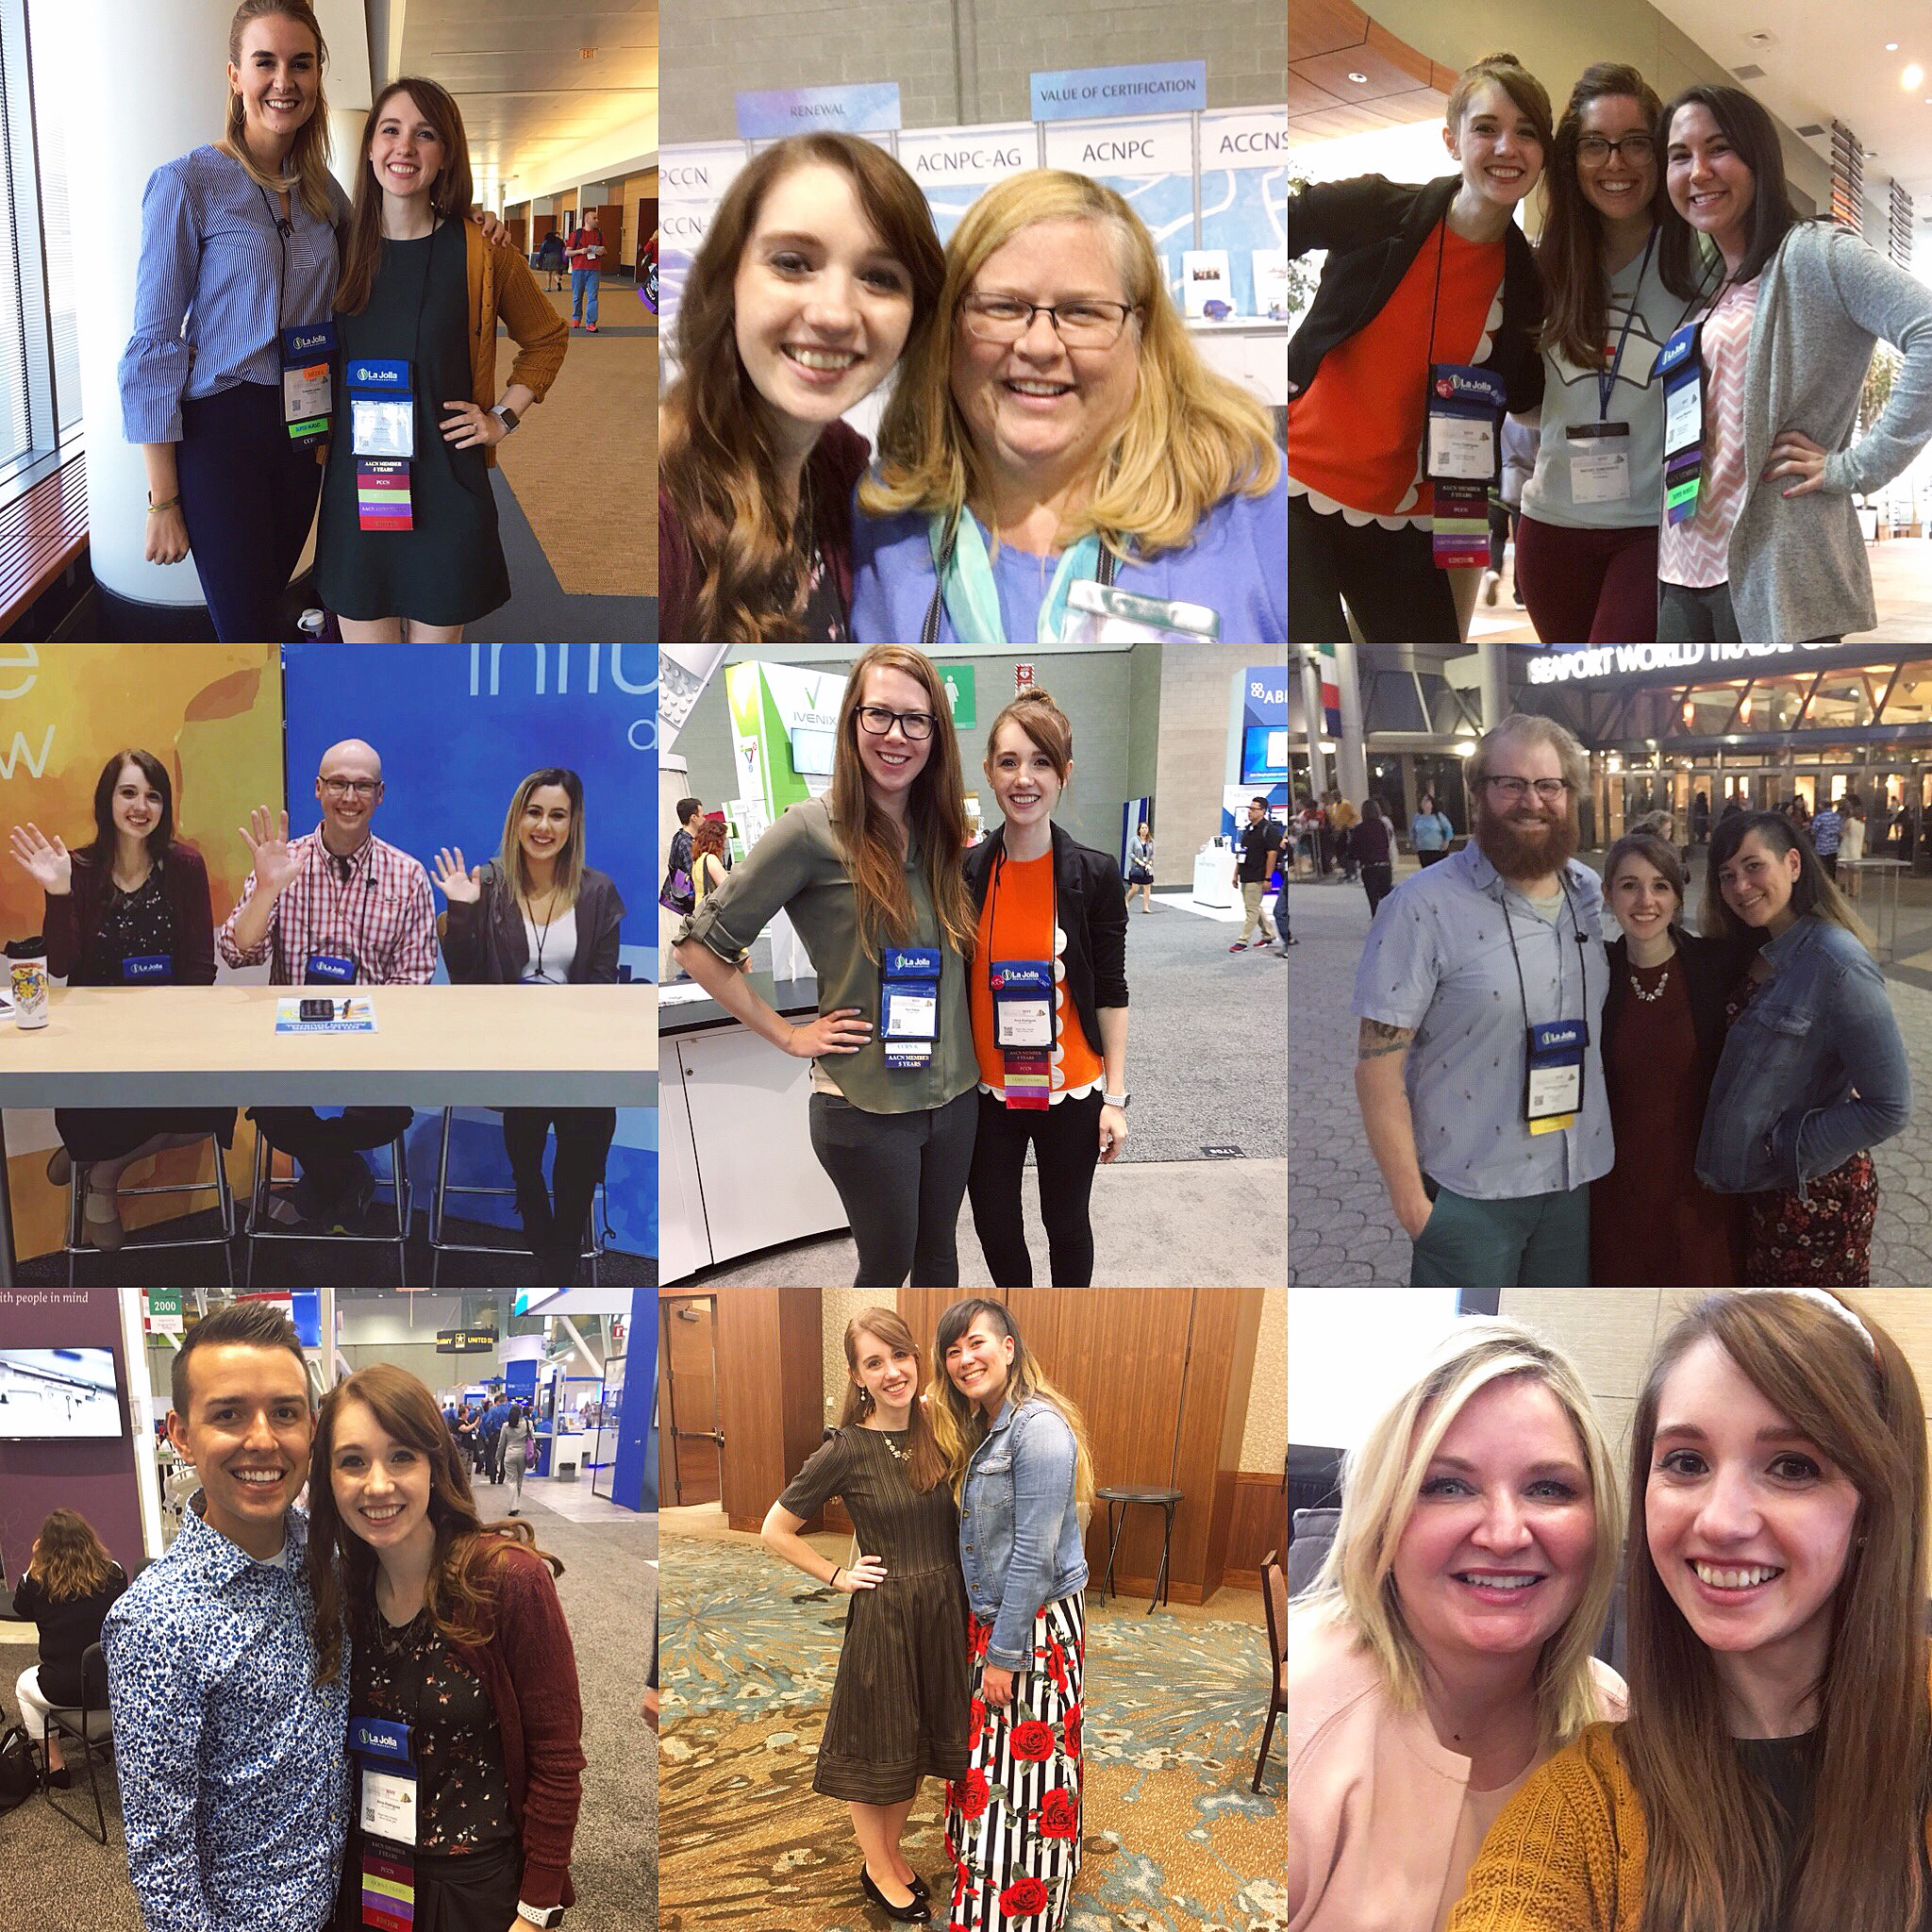 Danielle  @nurseabnormalities , Cindi with the AACN Certification Crew, Rachel  @thenursetribe , Jasmine  @jasminestarr05 , Jon  @technursejon , Marissa  @lipstickandlifesaving , Kati Kleber  @kati_kleber , Christiaan  @redbearrn , Blake  @nurse.blake , Fiona  @abstrctevlbrbie , Nicole  @nicolekupchik .